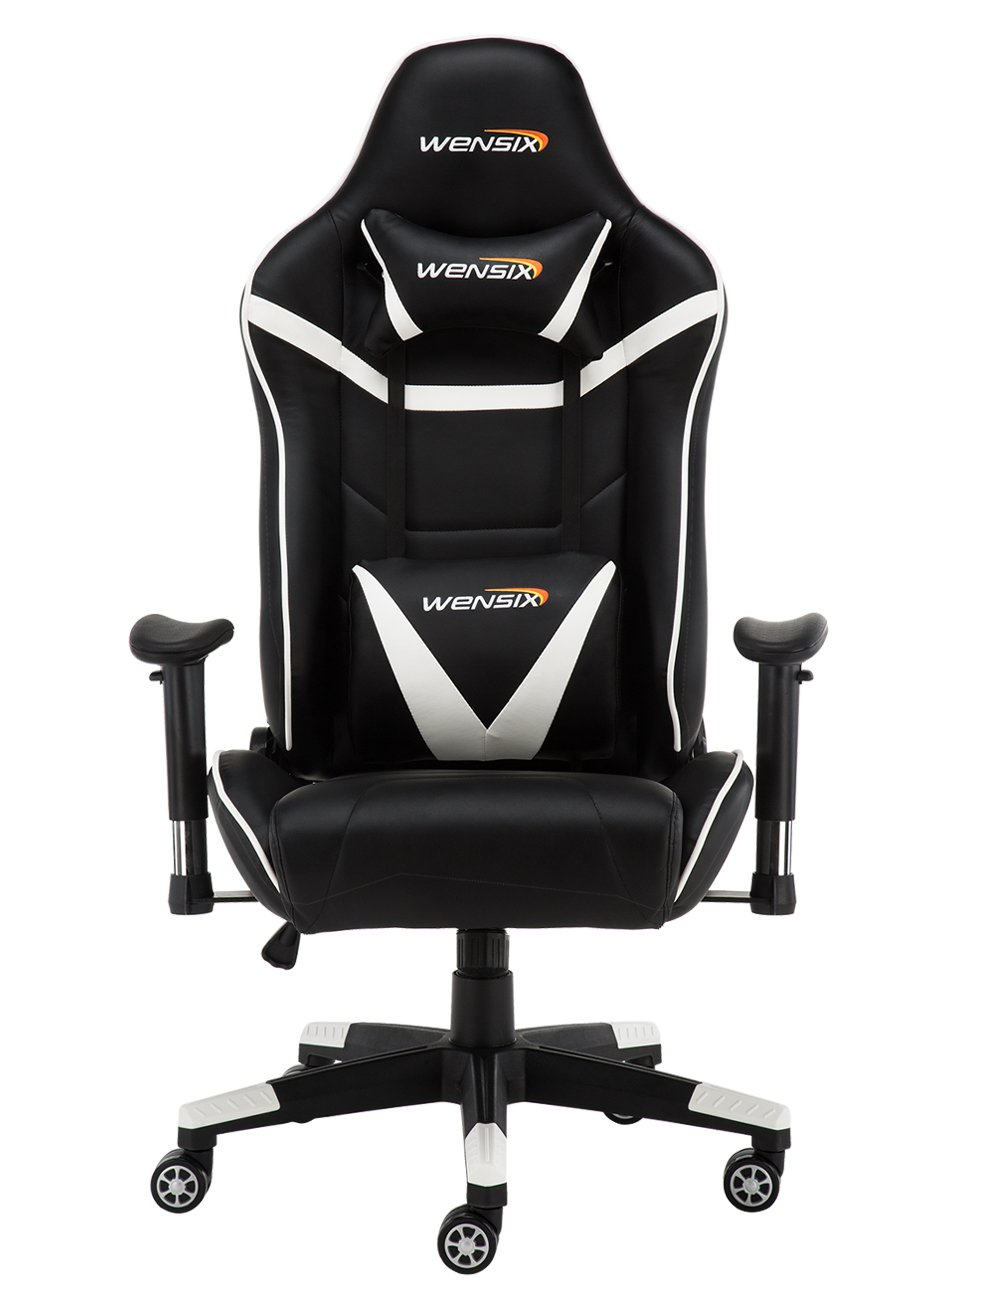 WENSIX Ergonomic High Back Computer Gaming Chair for PC Racing Chairs with Adjustable Headrest and Backrest (Black/White)